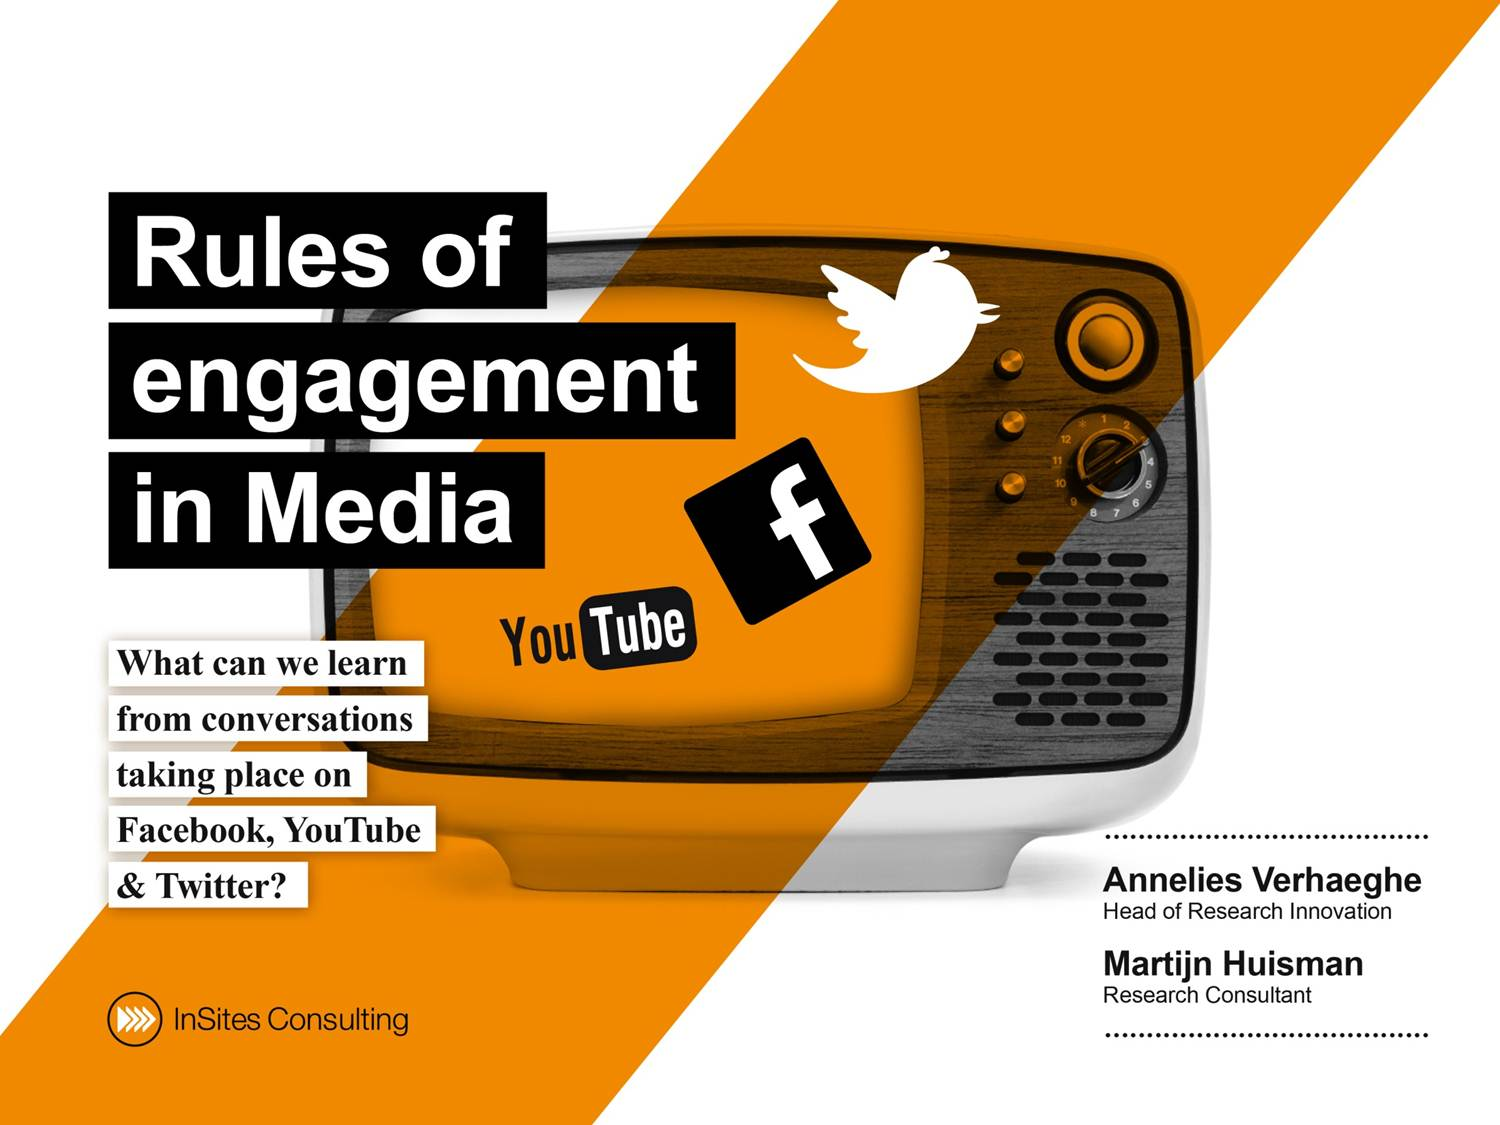 Rules of engagement in Media